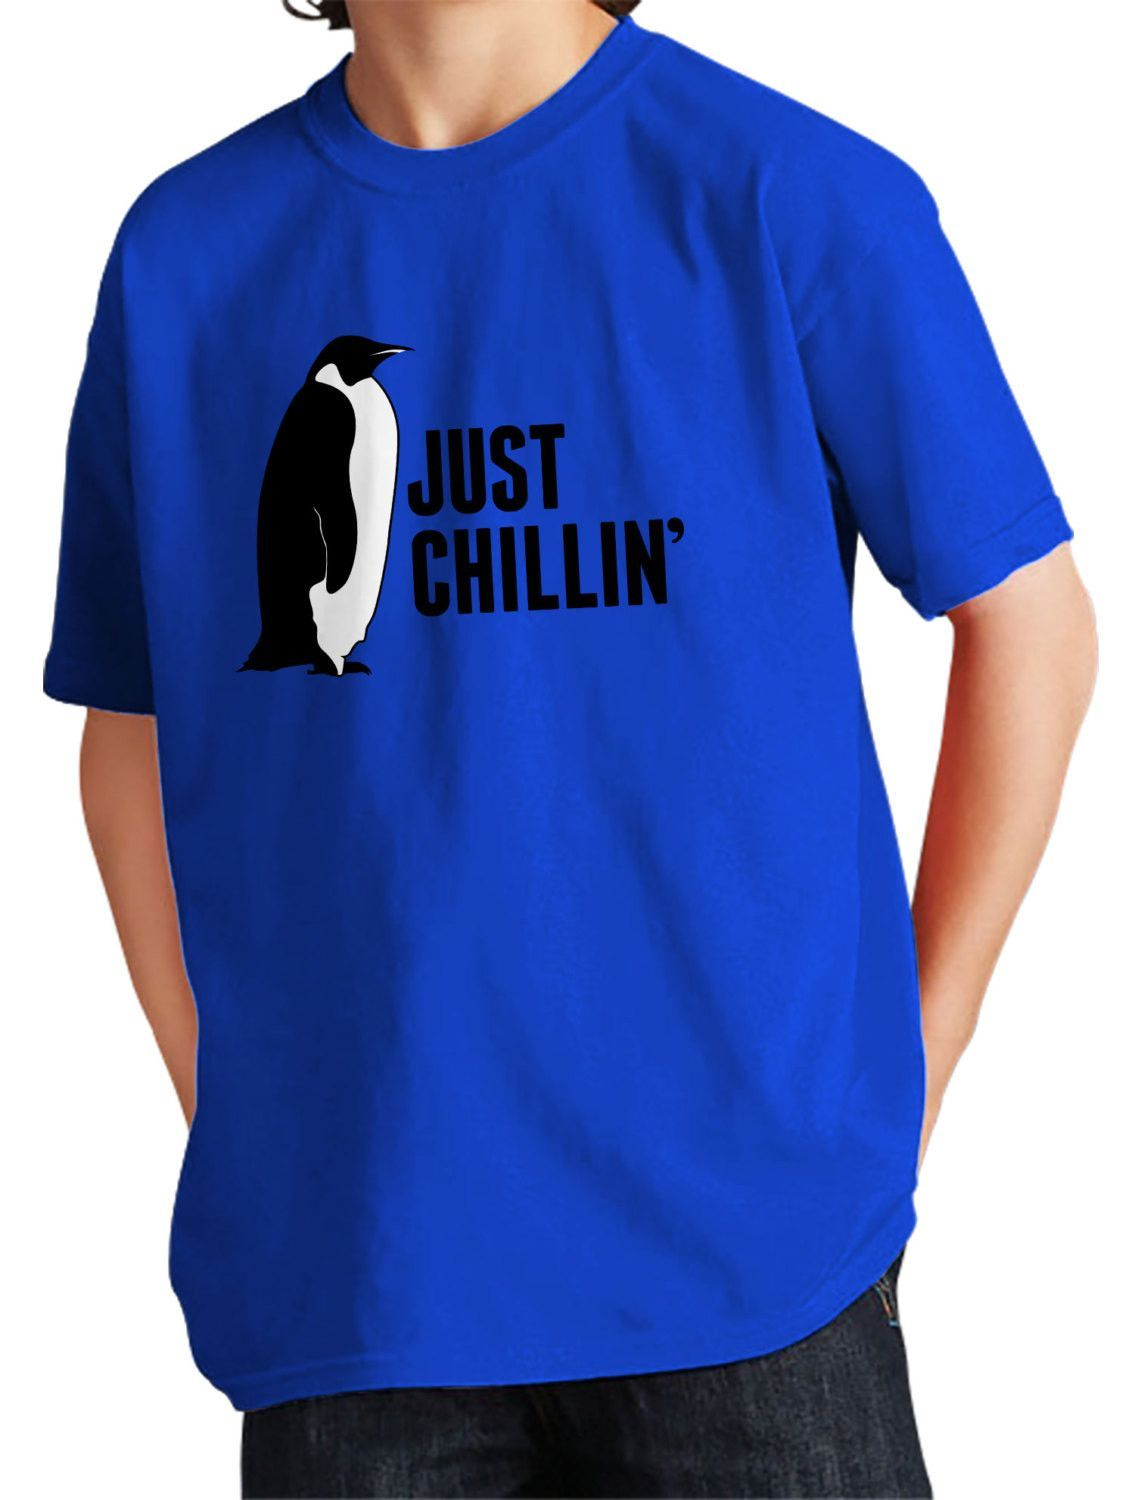 ae6aaa8983 Boy's Just Chillin T-Shirt Cool Penguin Shirt in 2019 ...